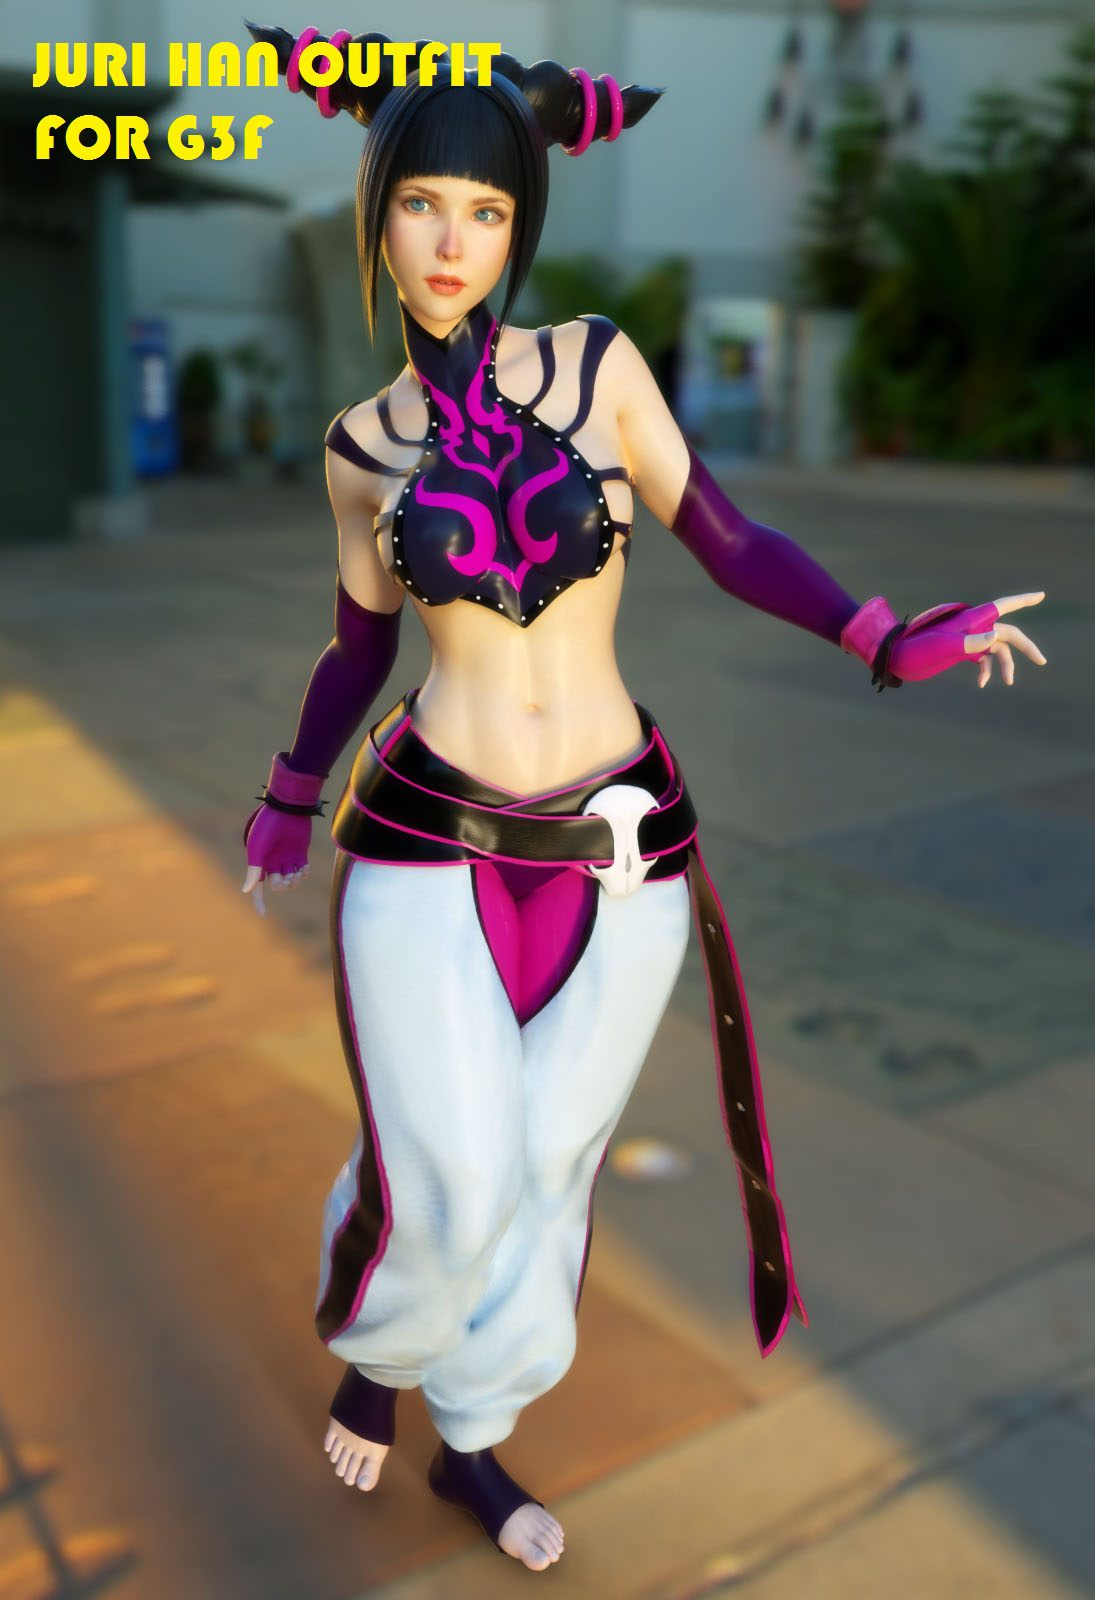 Juri Han Outfit for Genesis 3 Female